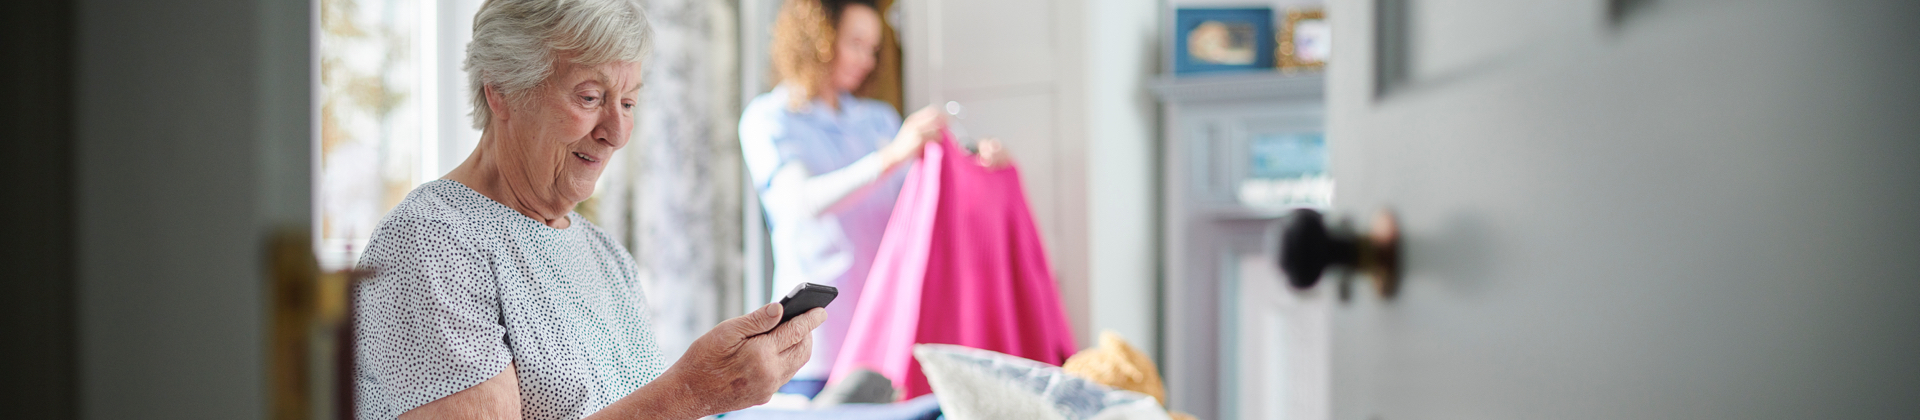 A senior woman looks at her cellphone while in the background someone is helping her hang up clothes